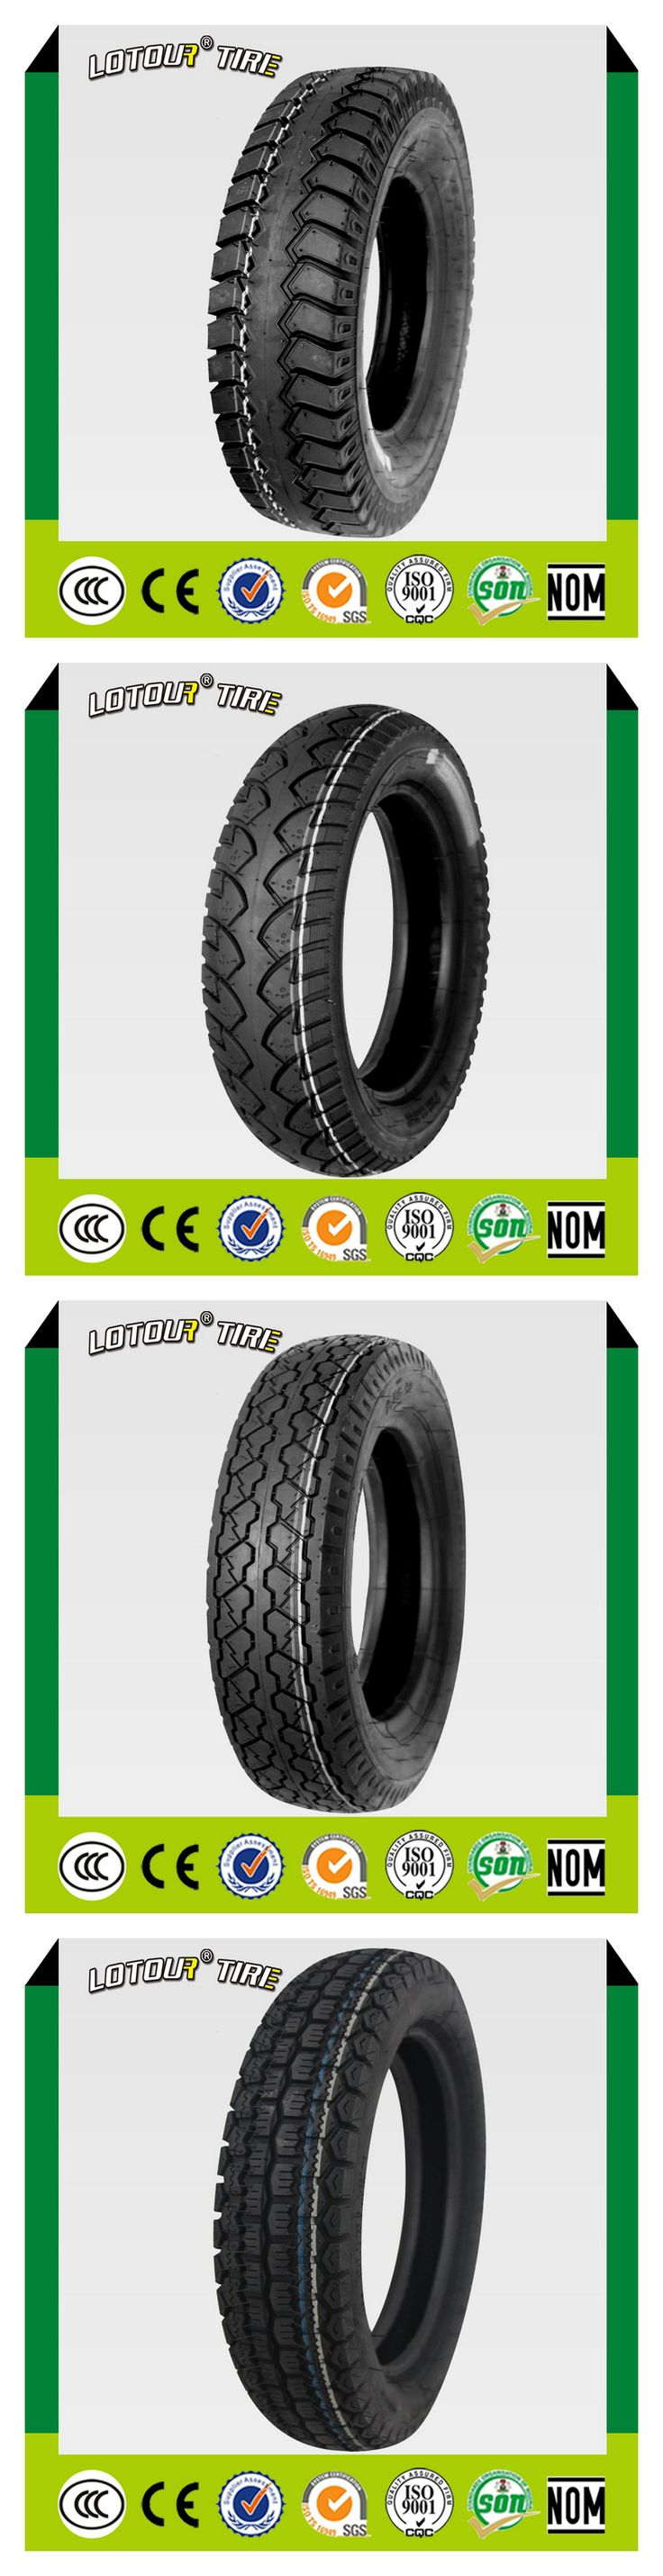 High quality motorcycle tire is made in China.Buy good tire from Lotour.For more detail,please contact me:+8618560450116 Whatsapp:+8618560450116 E-mail:janice@mondaytyre.com Website:www.mondaytyre.com